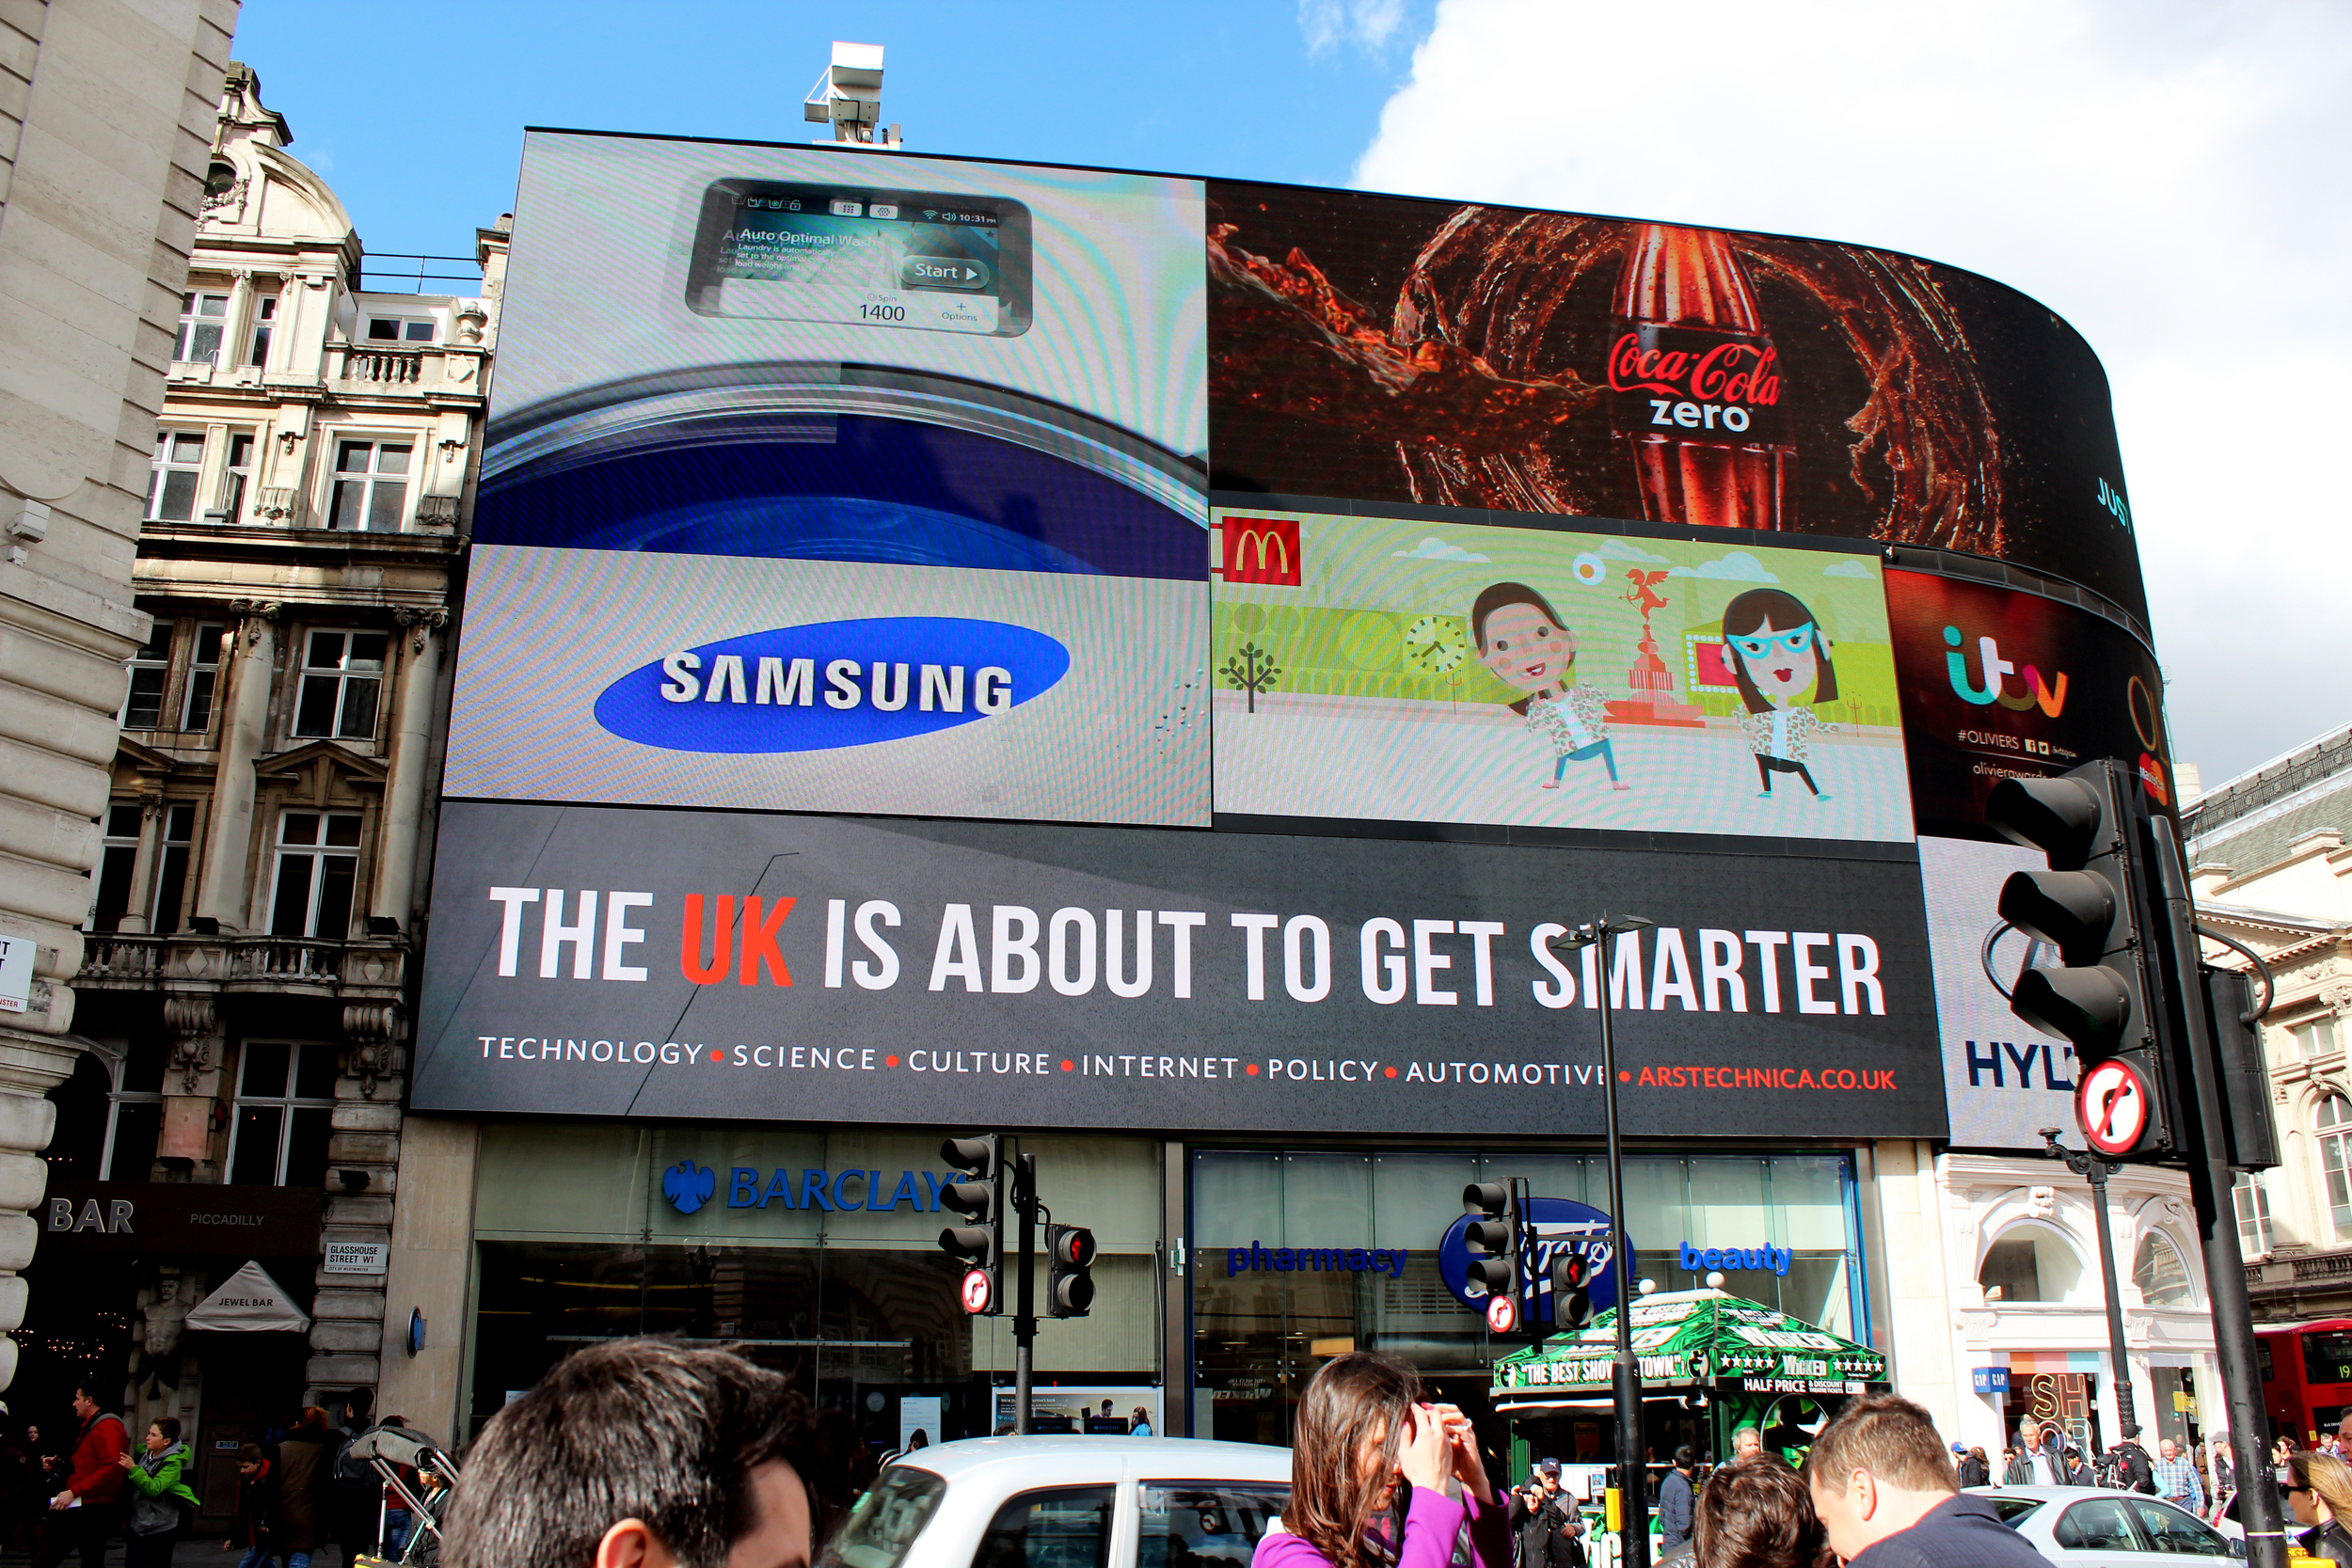 Ars Technica UK, Piccadilly Circus